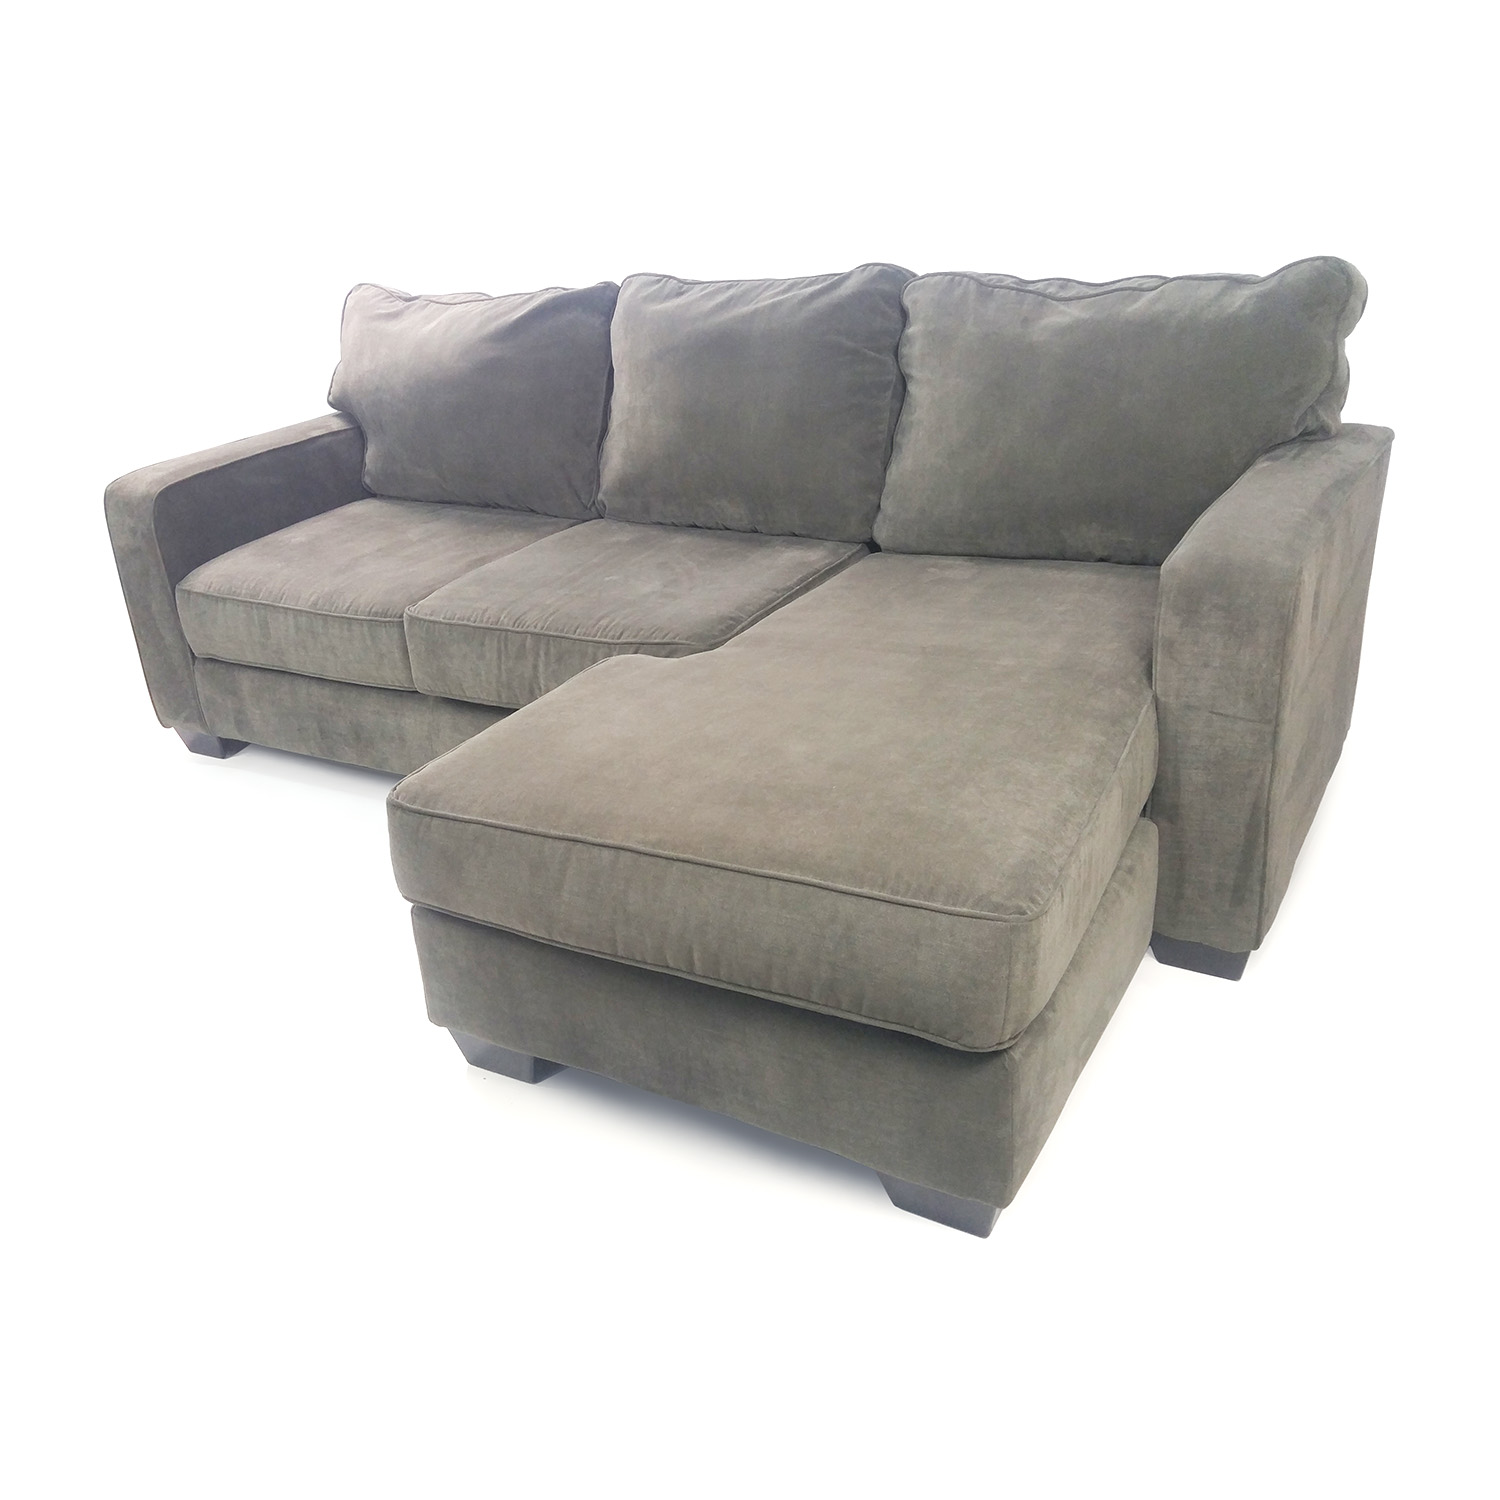 Hodan sofa chaise hodan marble sofa chaise signature for Ashley furniture sectional sofas chaise